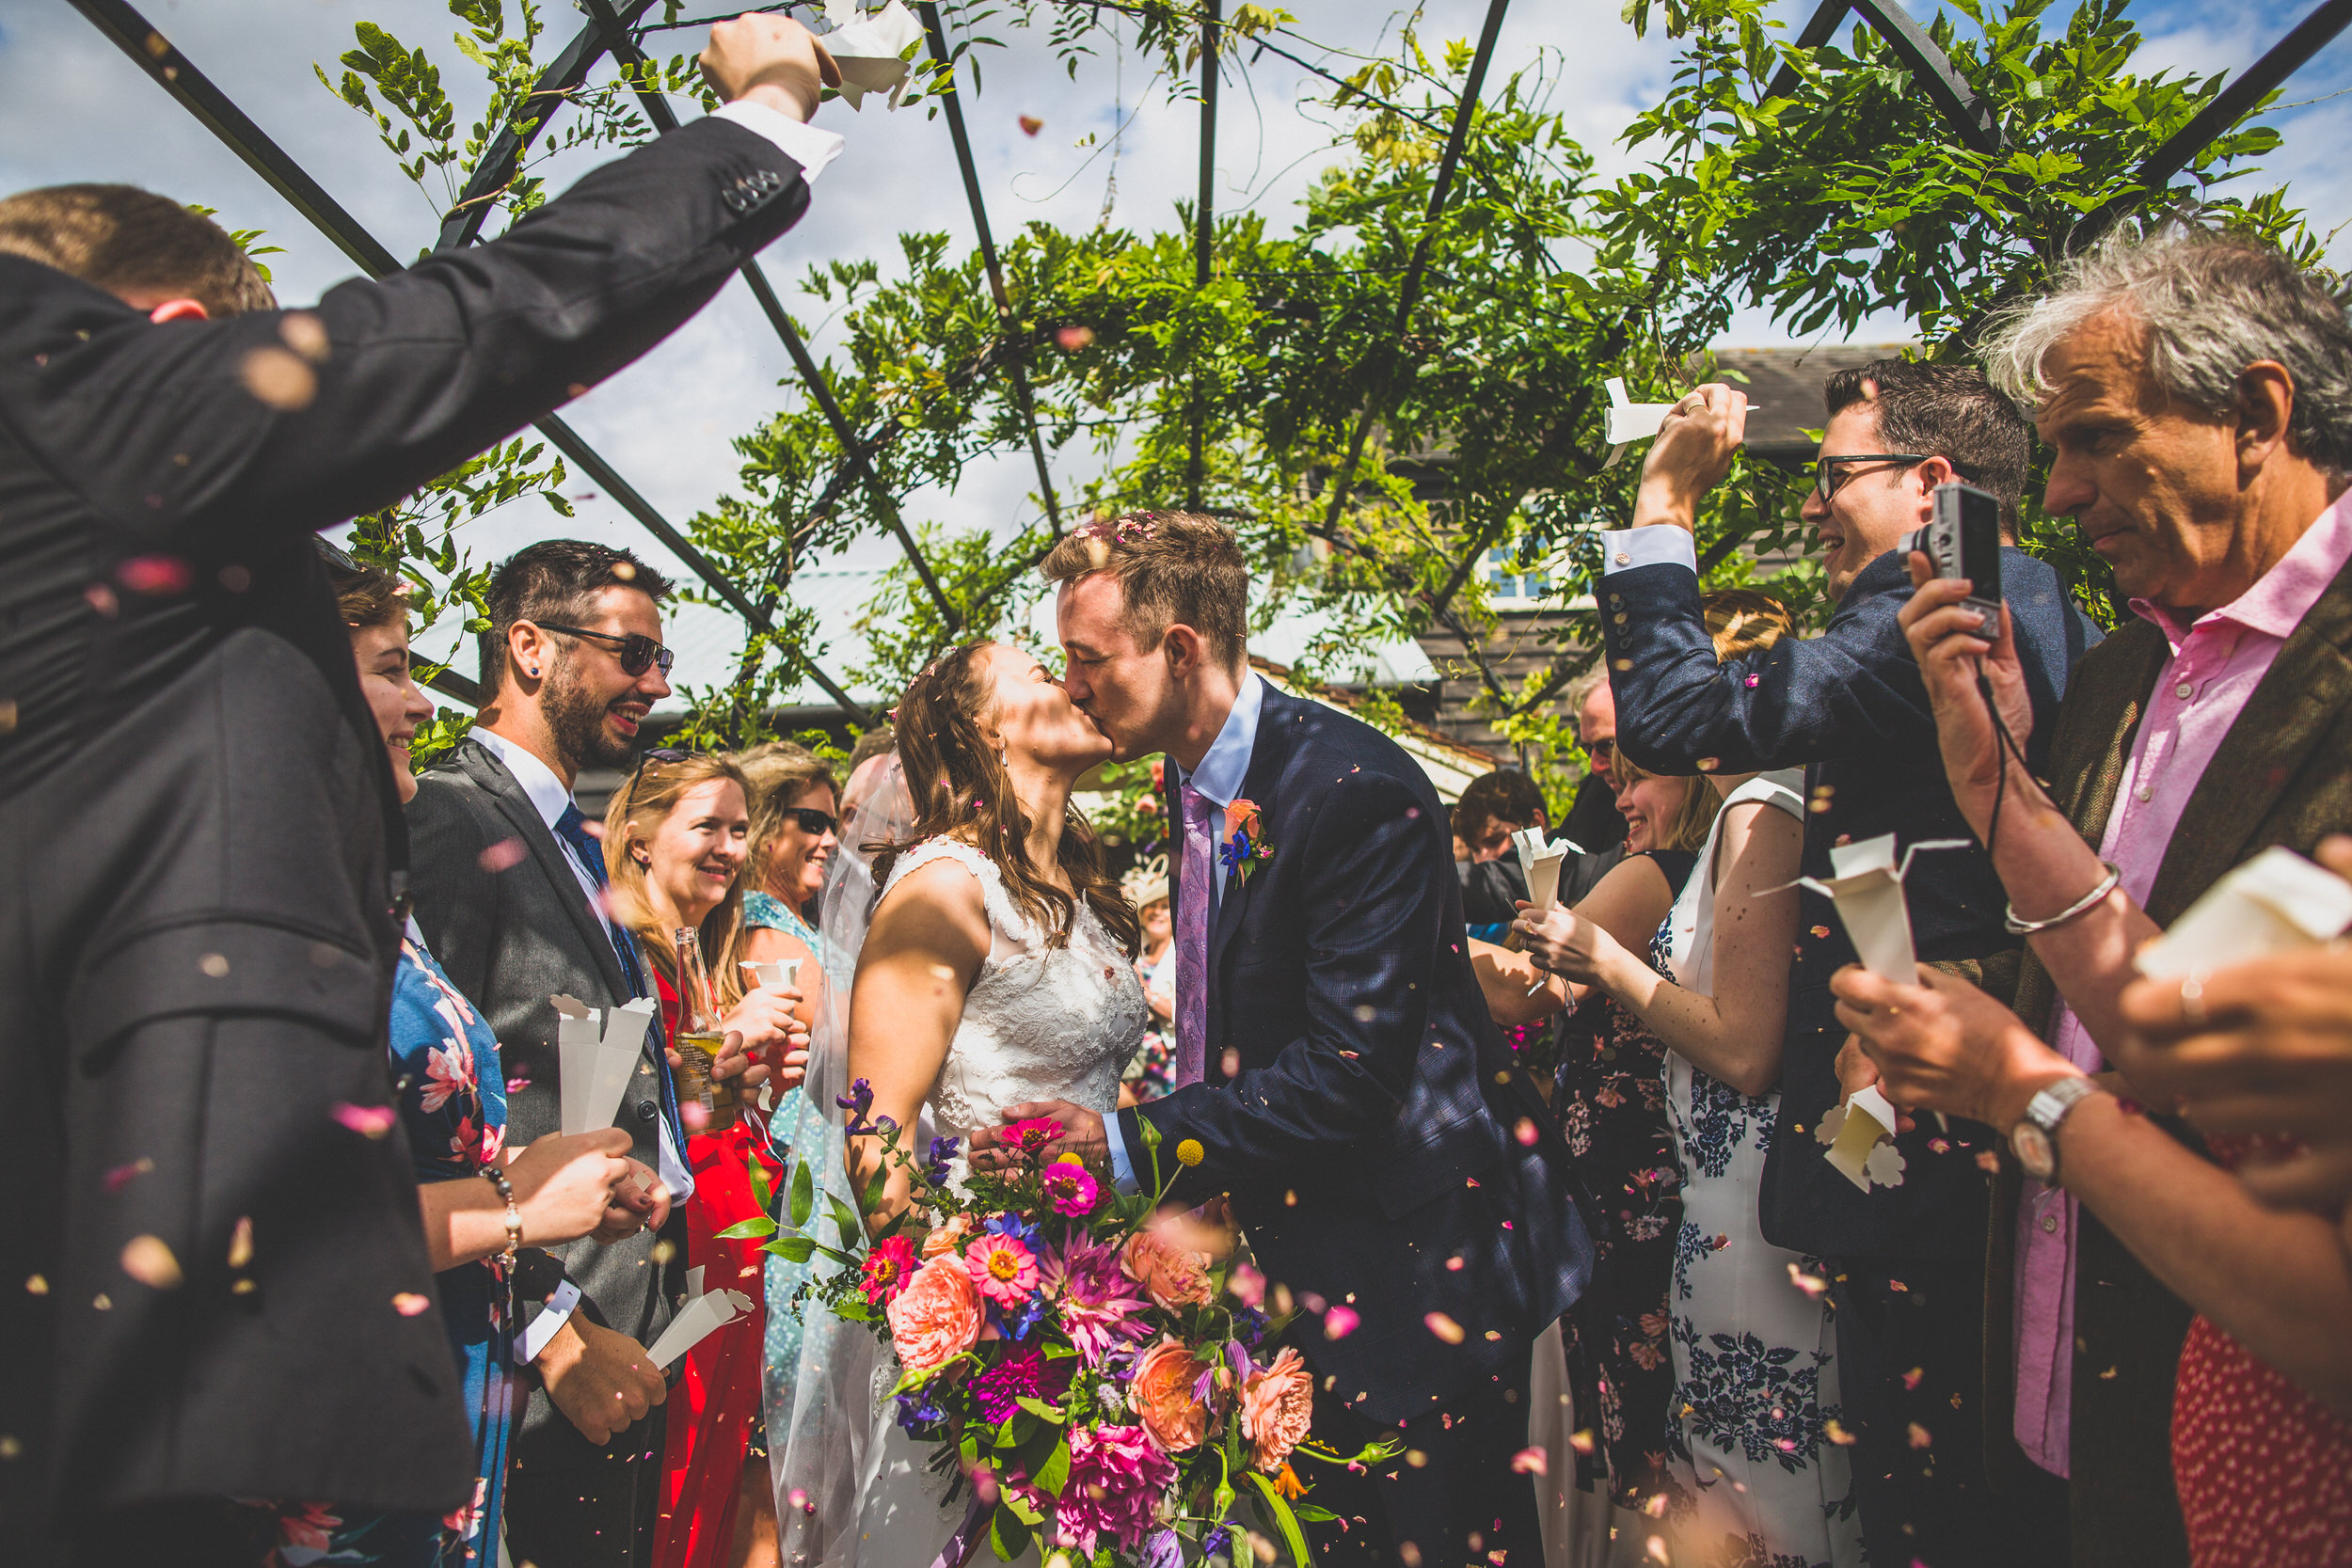 Sydney Confetti Wedding